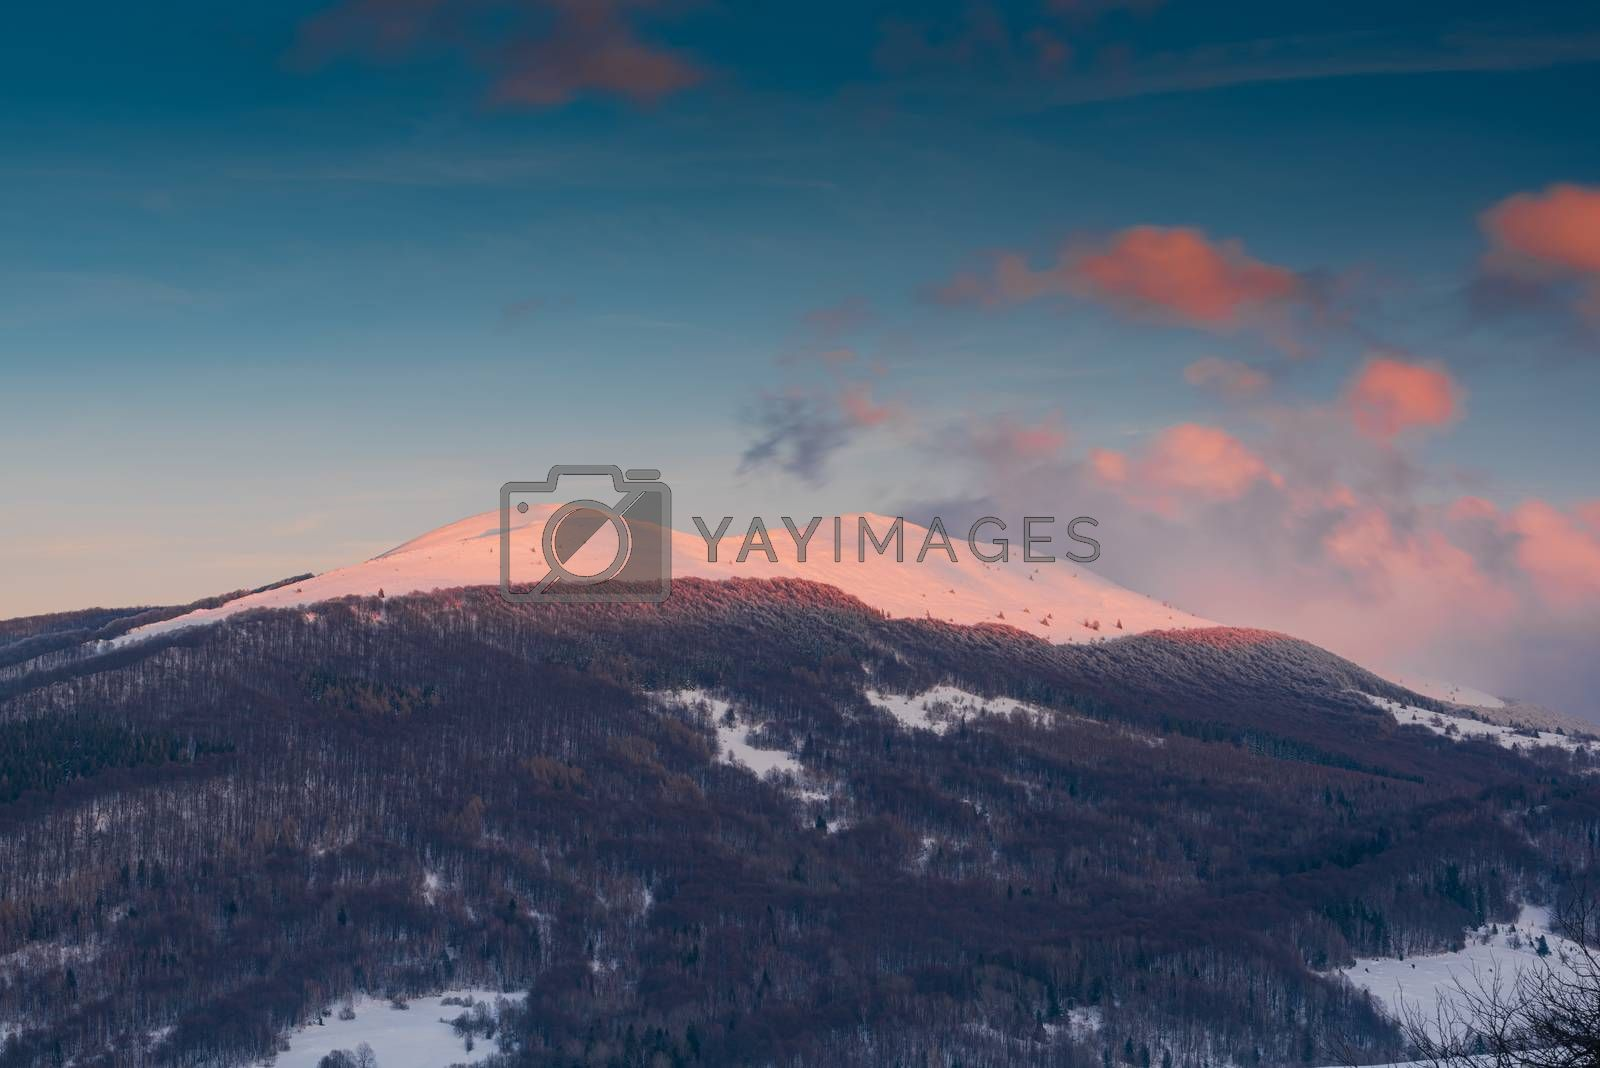 Sunrise over Polonyna Wetlinska and Carynska in Carpathian Mount by merc67